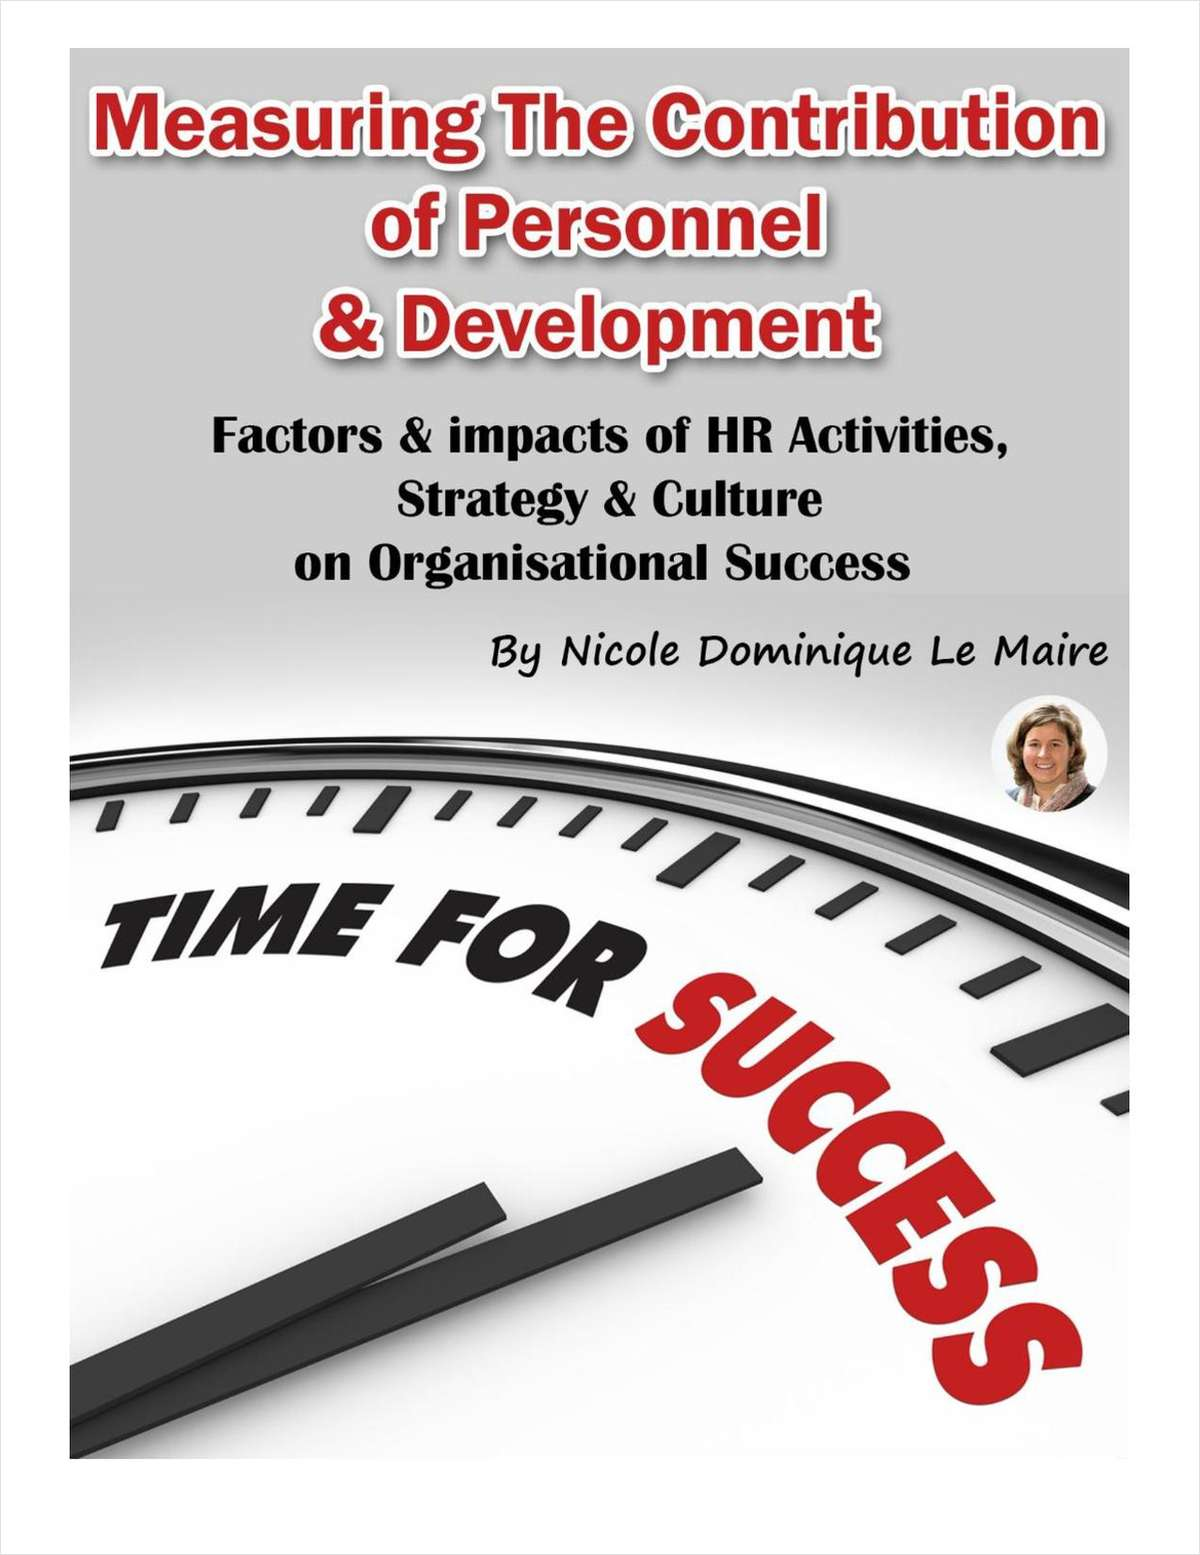 Measuring The Contribution of Personnel & Development - Factors & Impacts of HR Activities, Strategy & Culture on Organizational Success